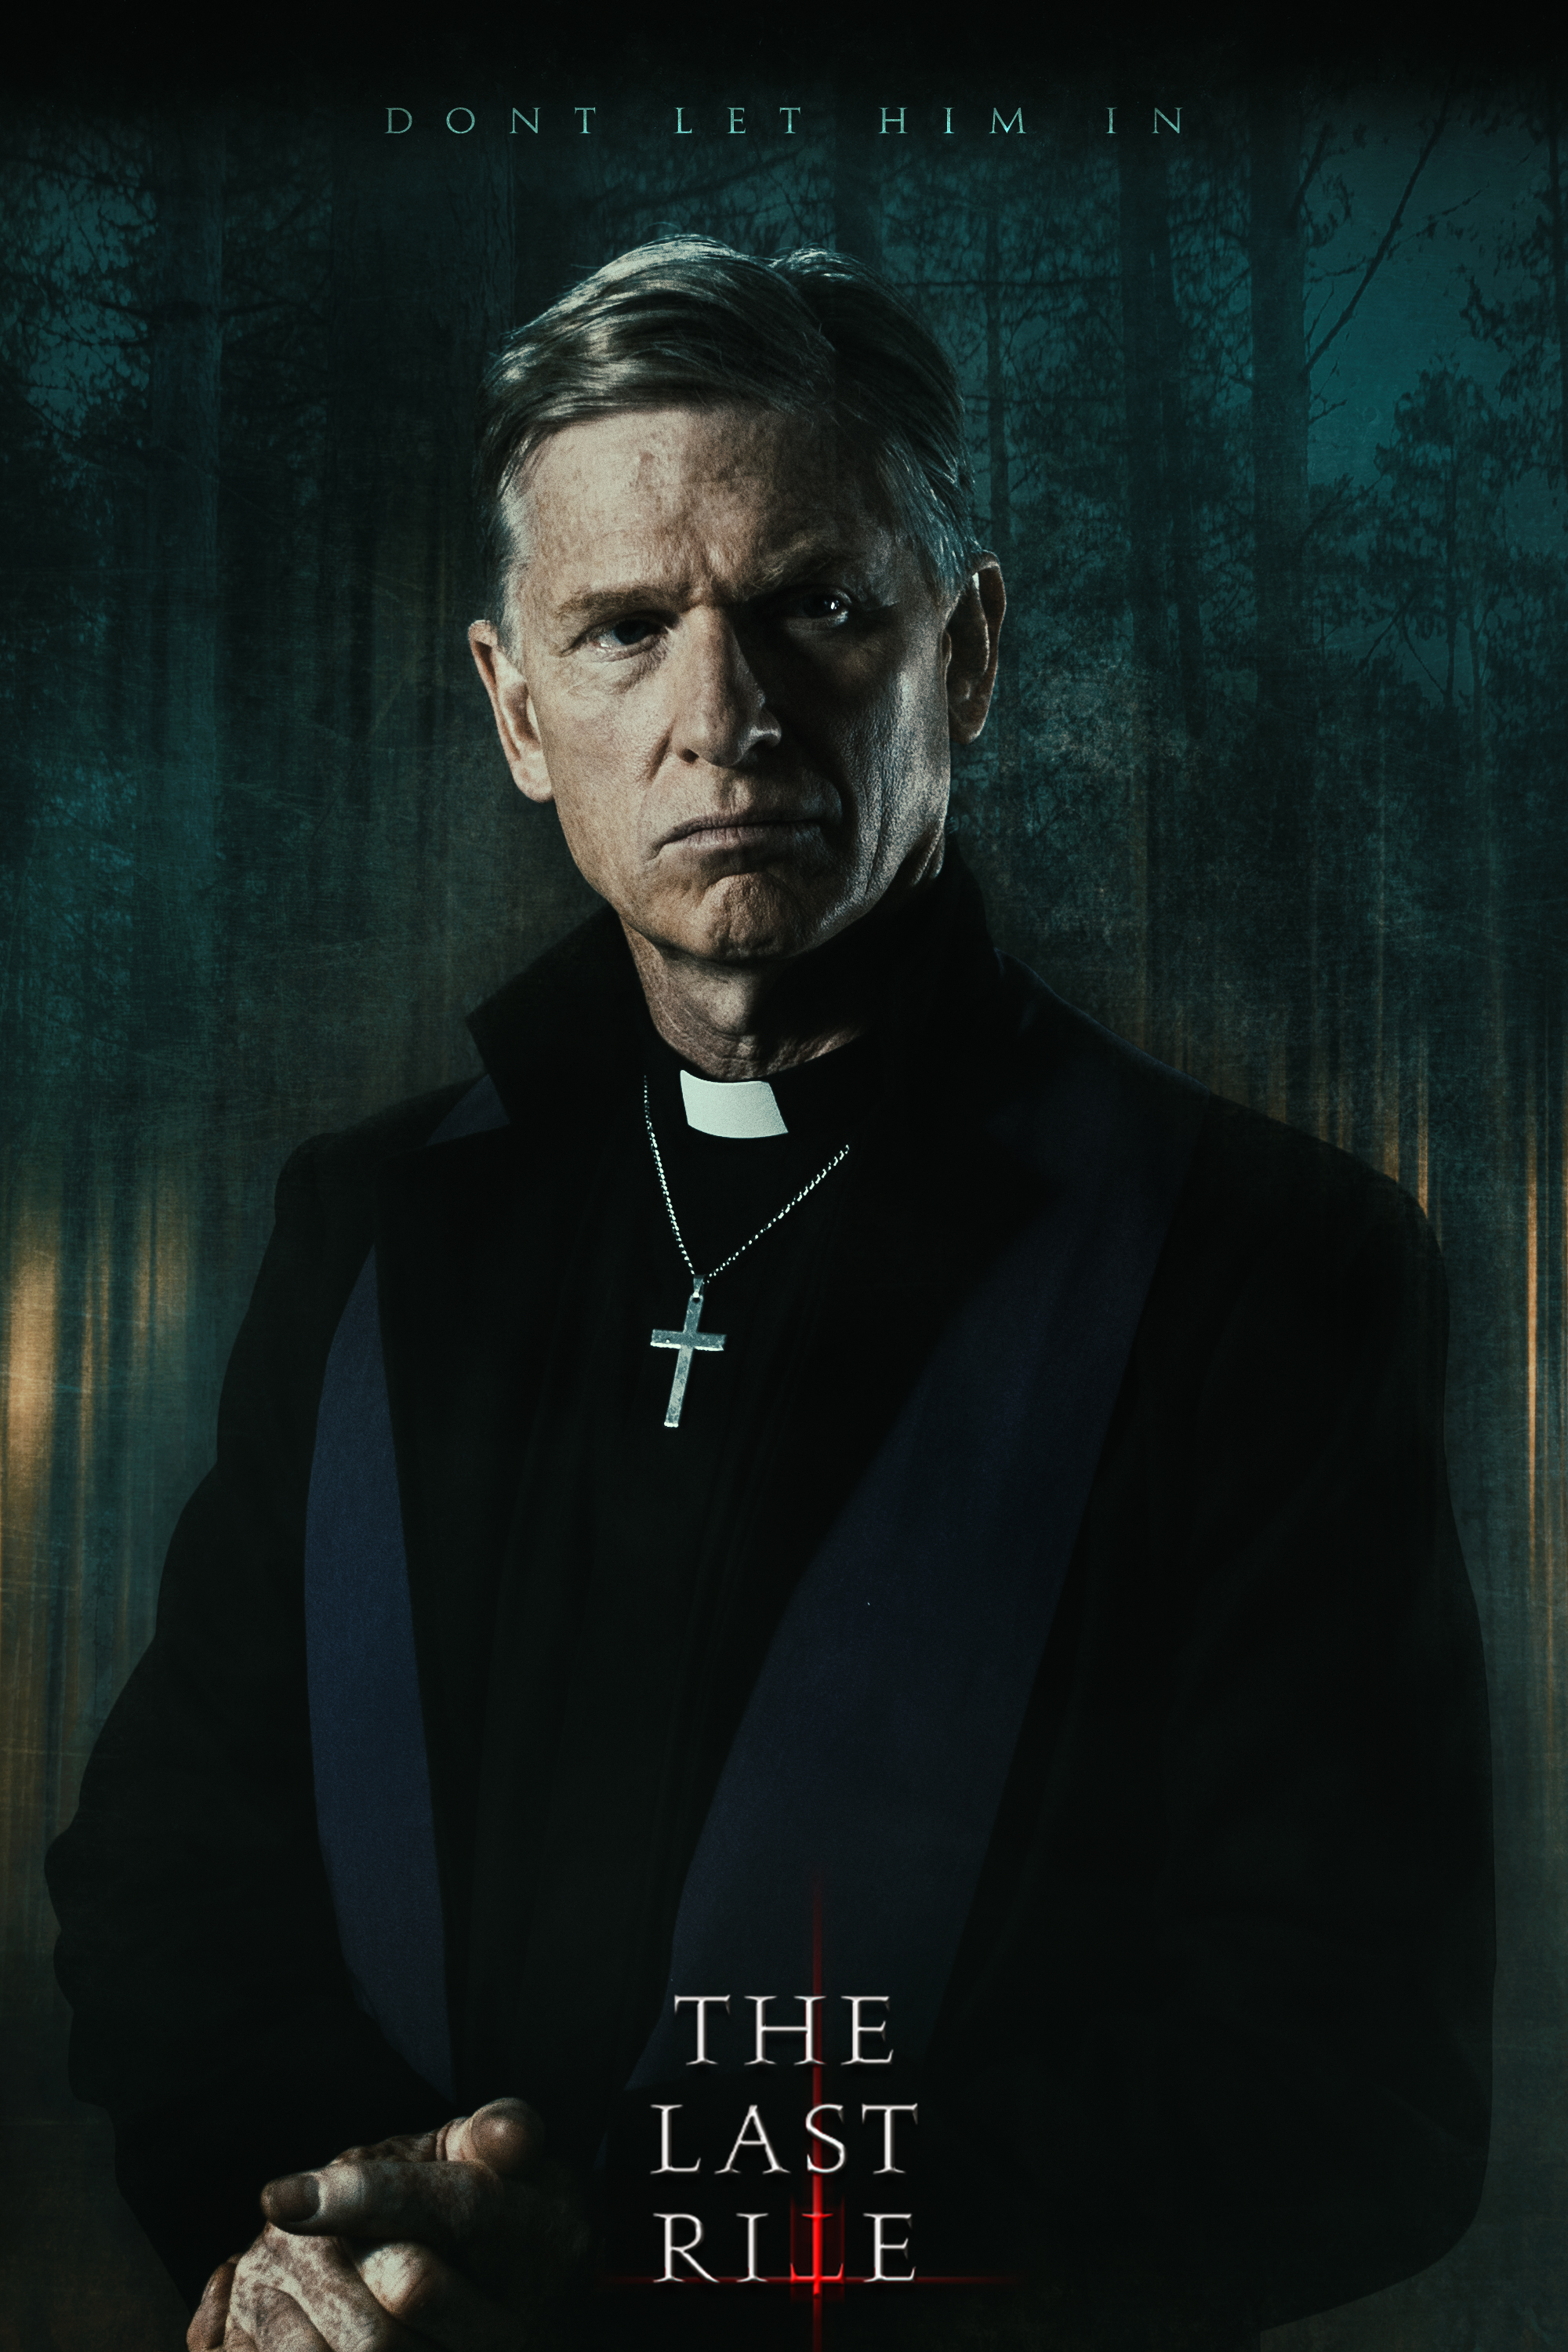 FATHER ROBERTS